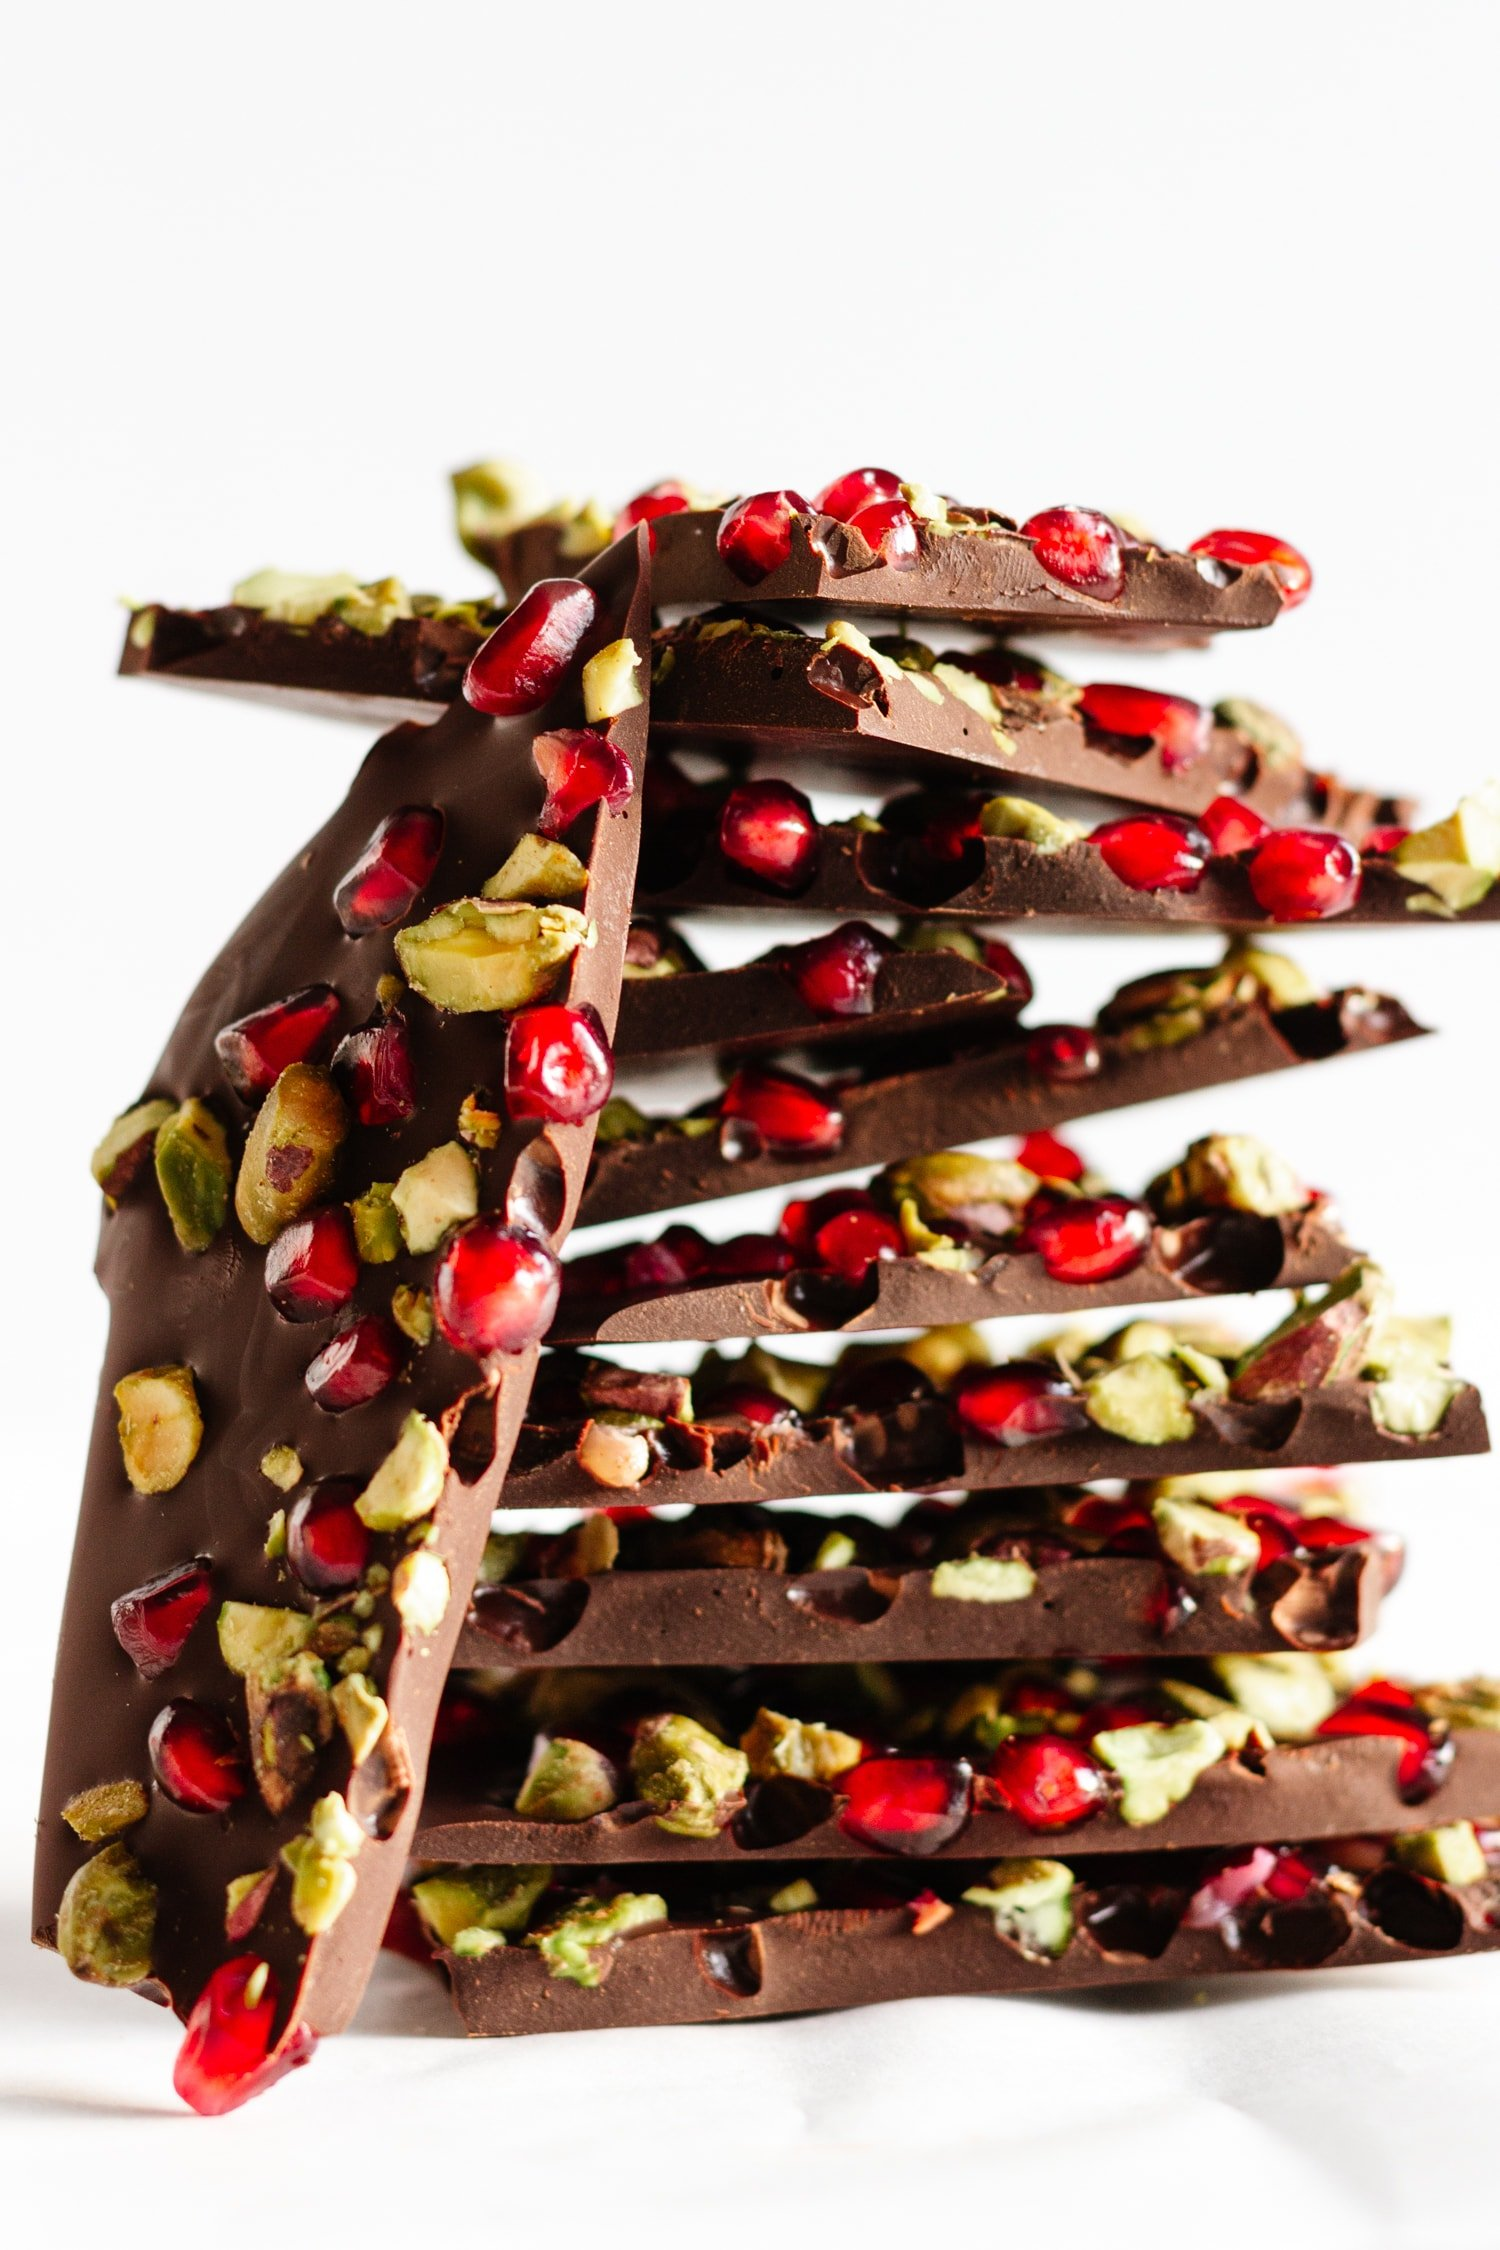 Piled up pieces of Pomegranate + Pistachio Dark Chocolate Bark on a white background.